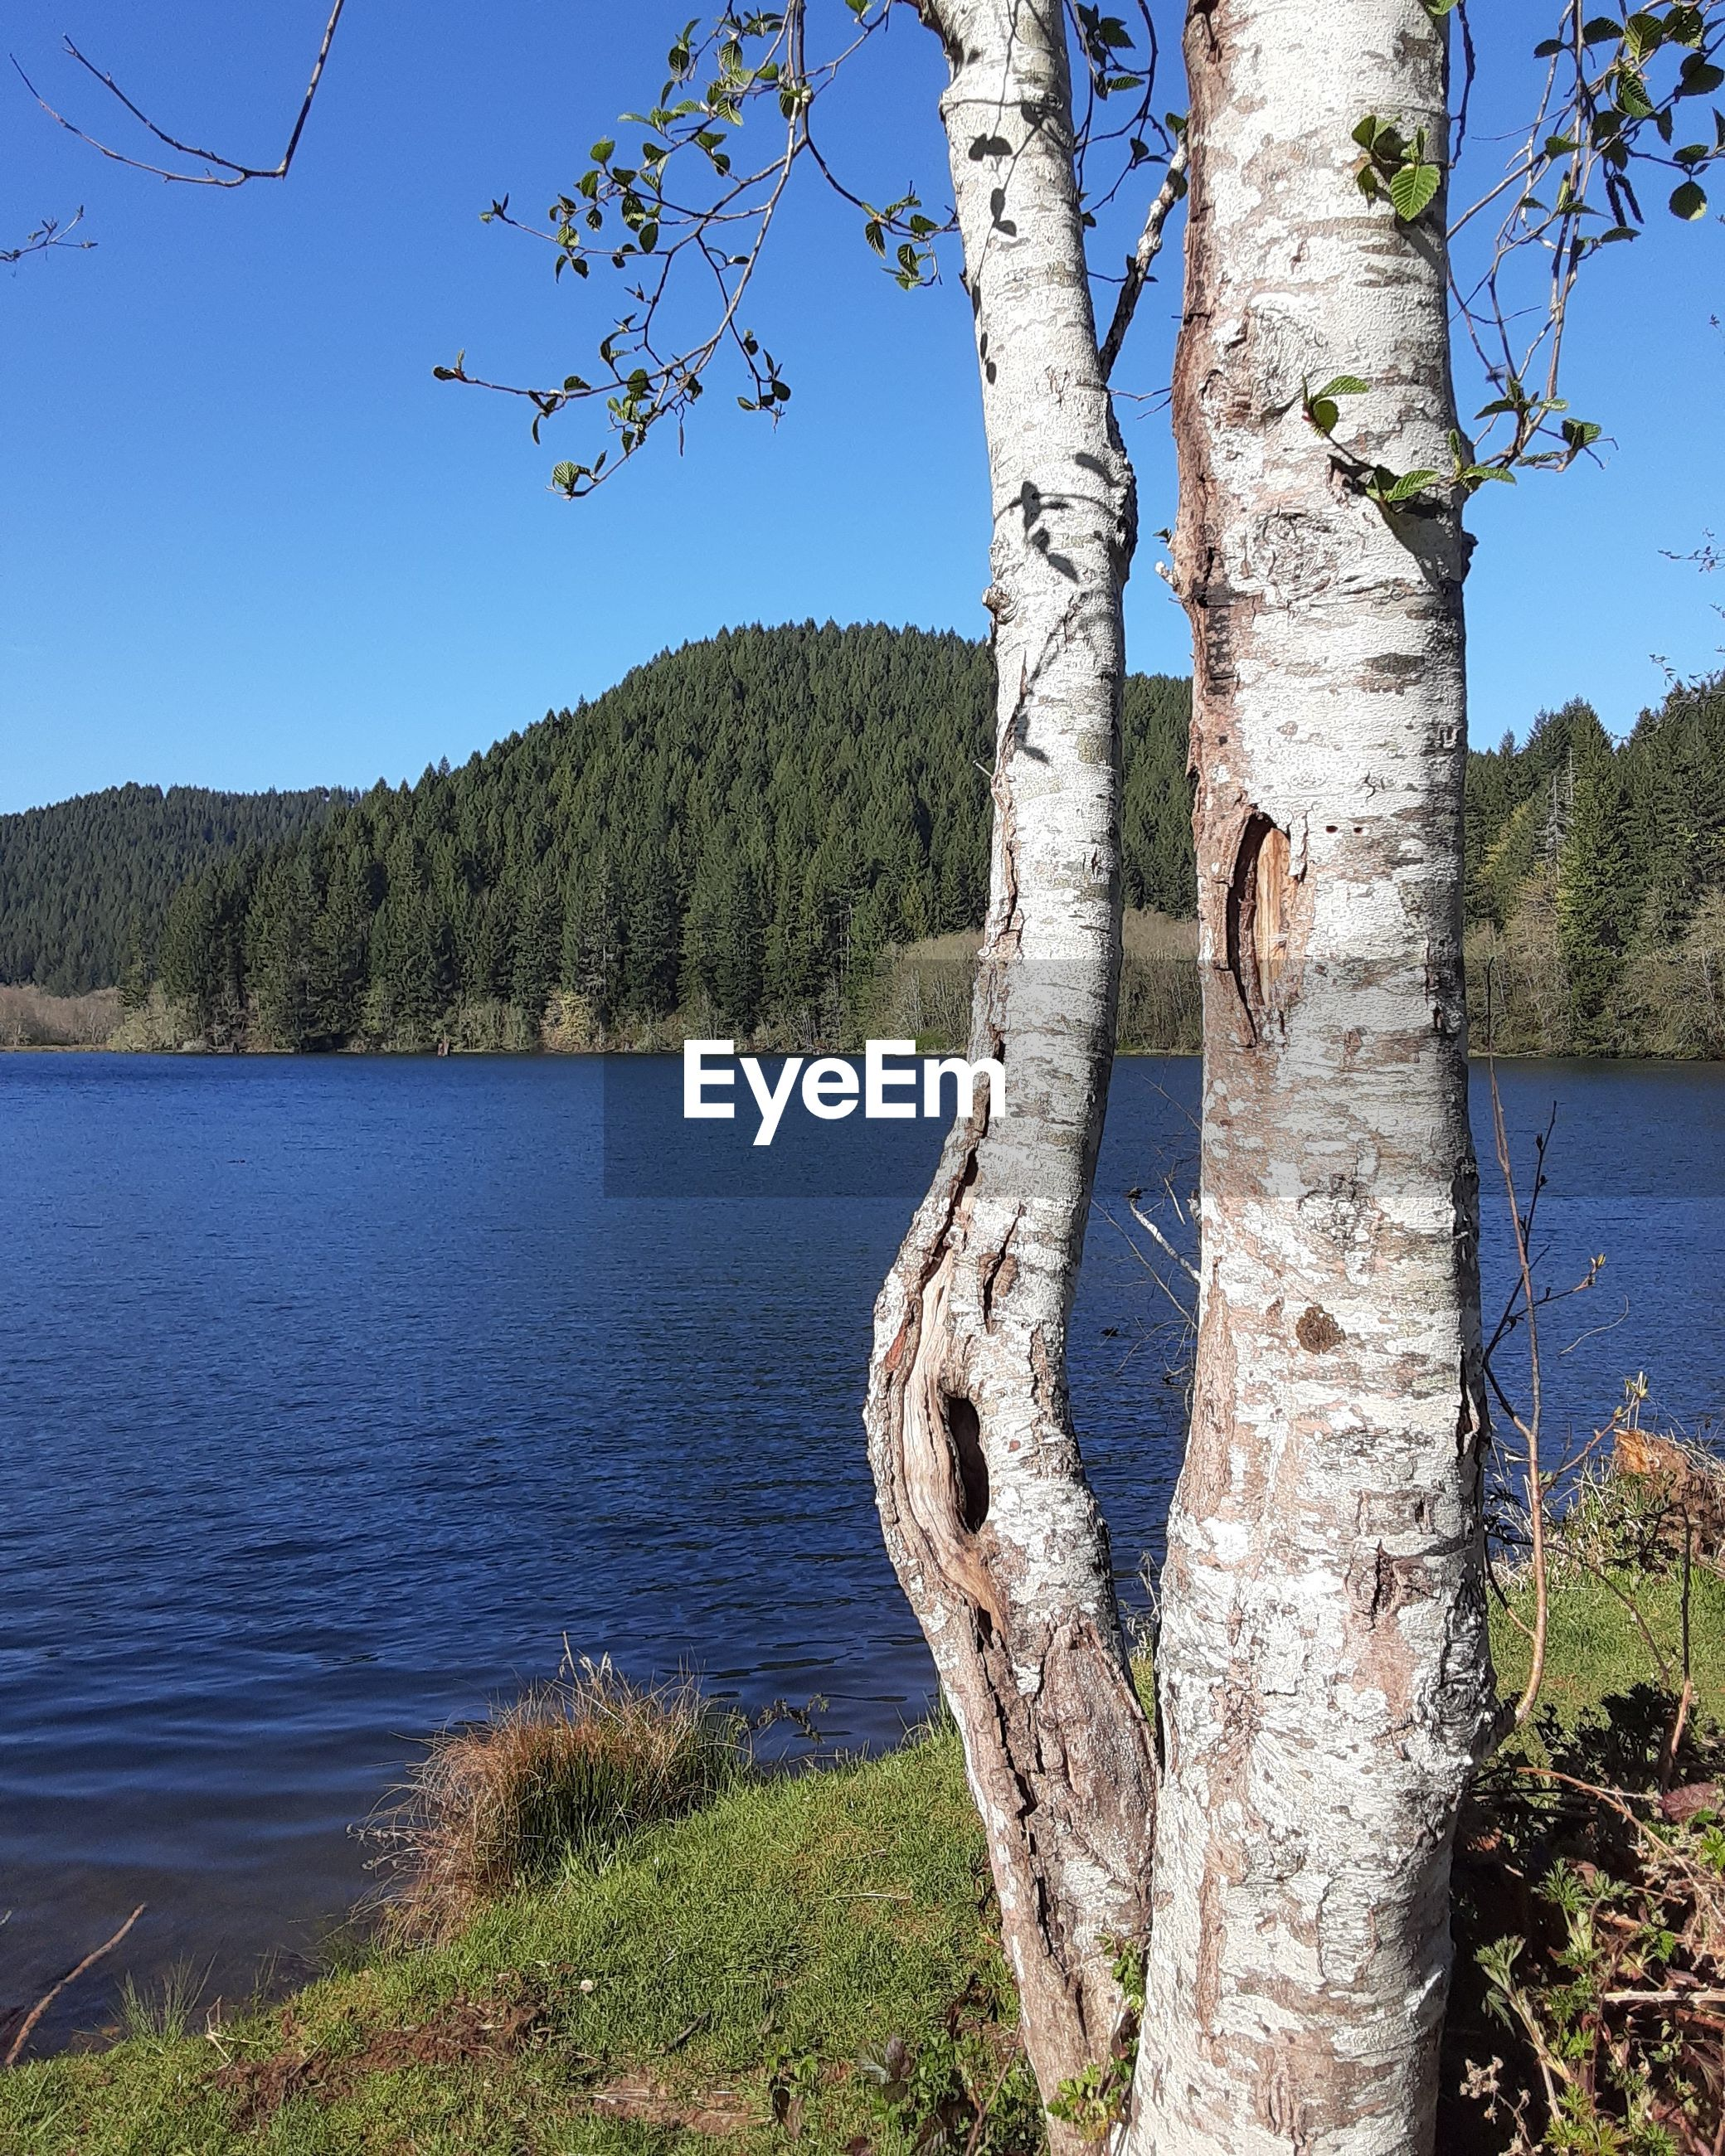 SCENIC VIEW OF LAKE BY TREE AGAINST CLEAR SKY